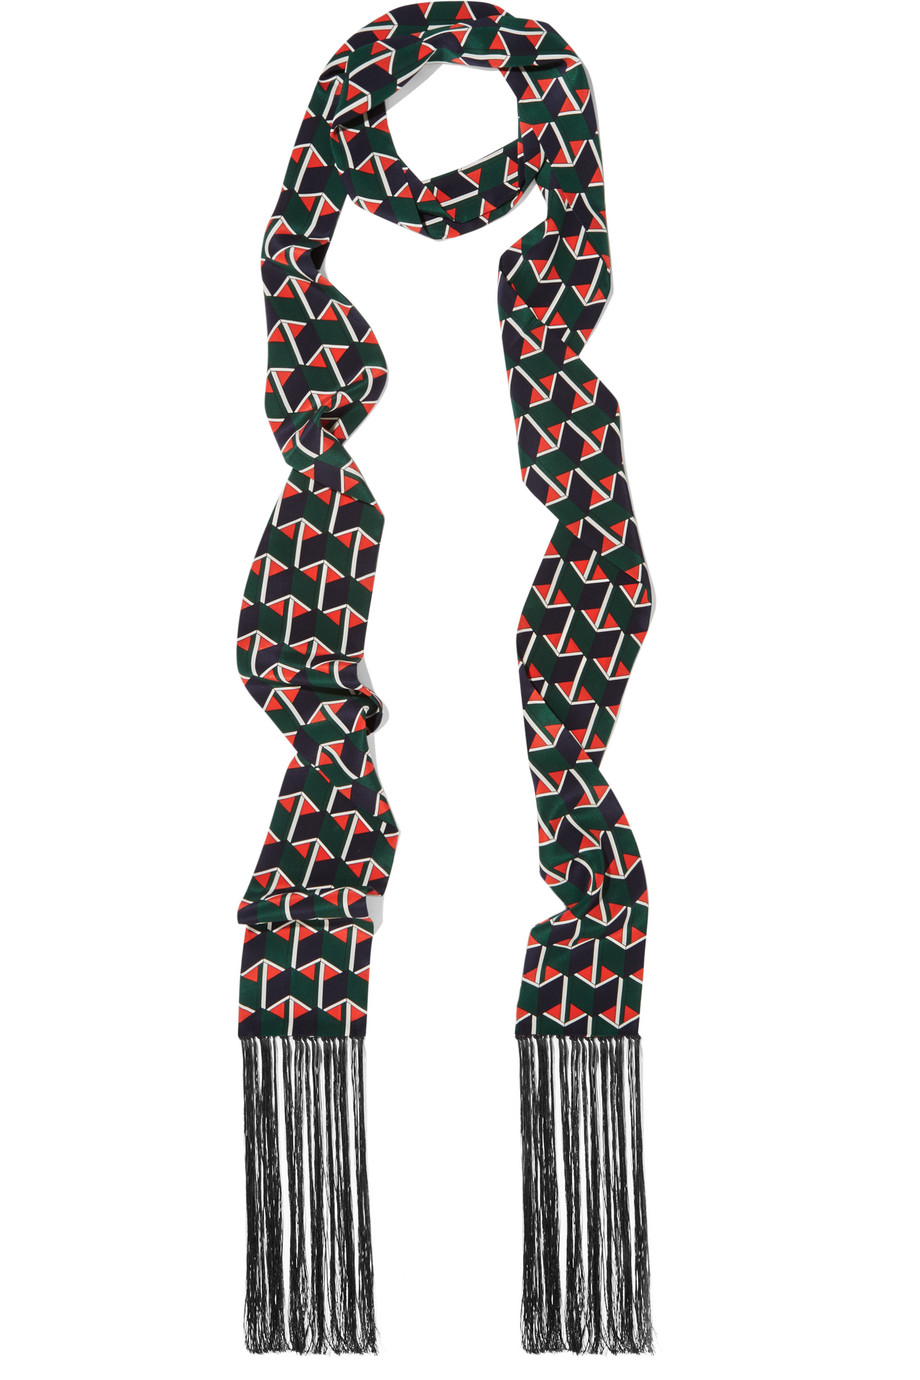 Gucci Fringed Printed Silk Scarf, Emerald/Red, Women's